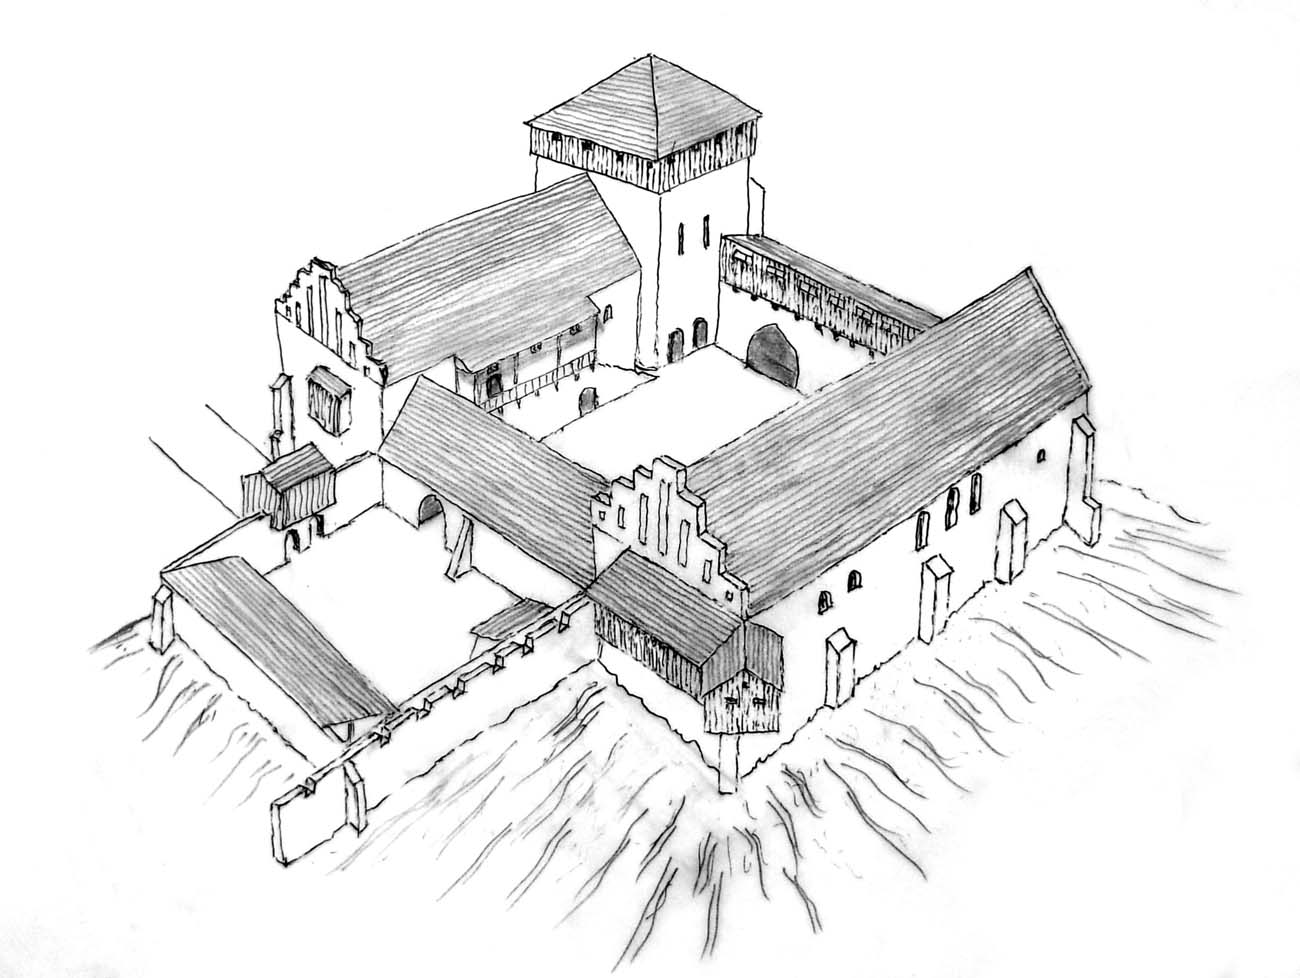 Pyzdry - royal castle - Ancient and medieval architecture